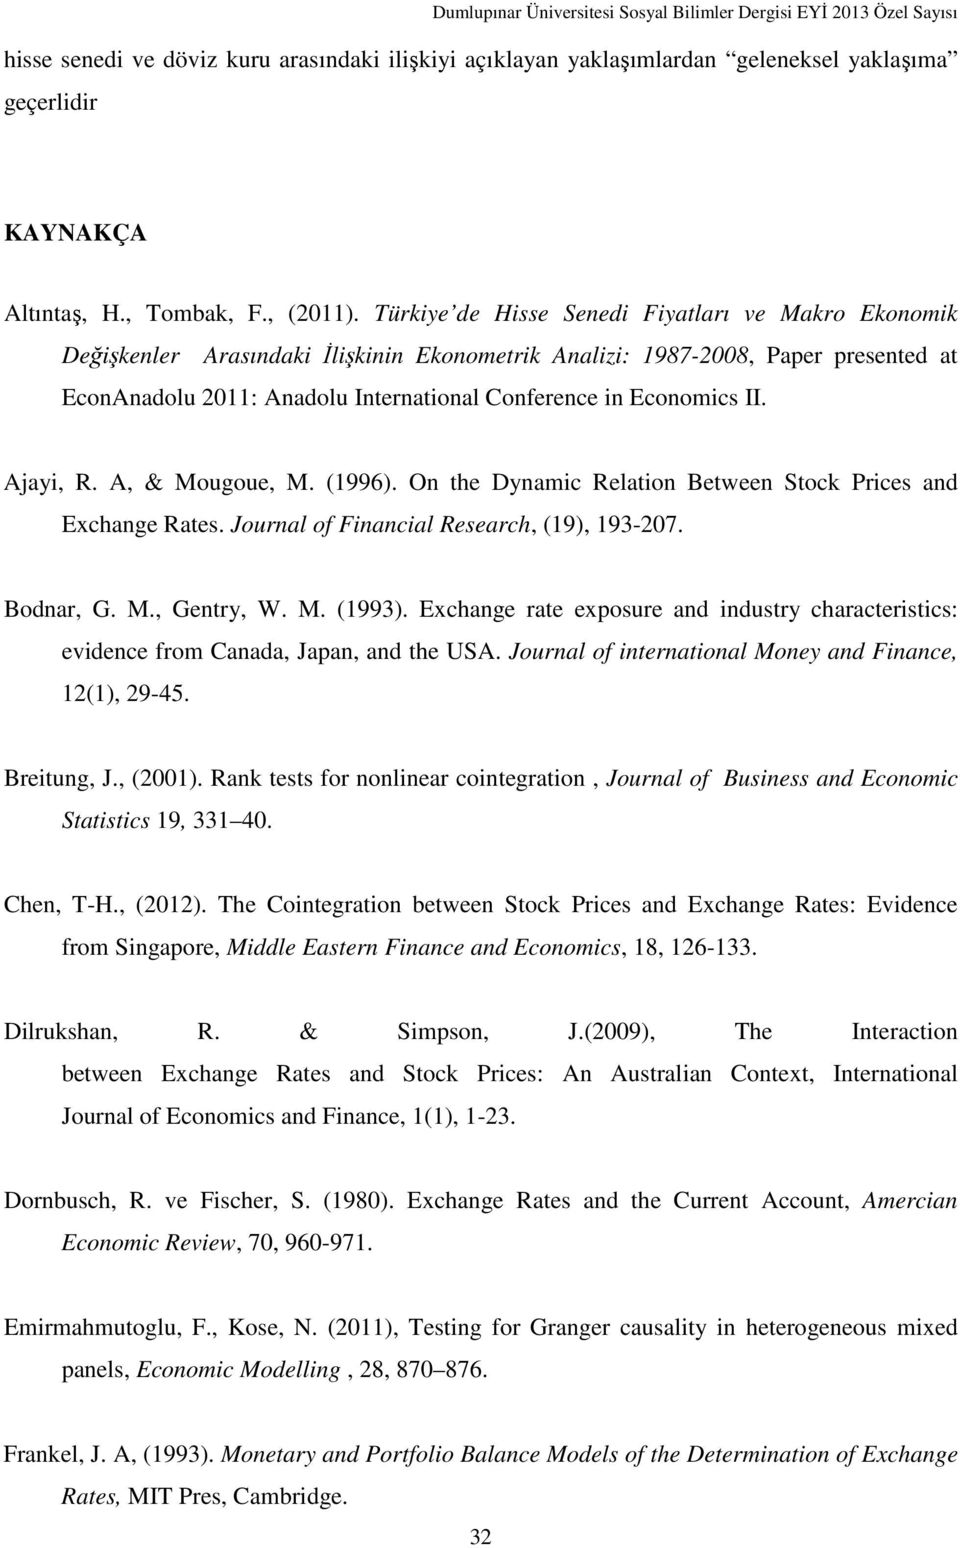 II. Ajayi, R. A, & Mougoue, M. (1996). On the Dynamic Relation Between Stock Prices and Exchange Rates. Journal of Financial Research, (19), 193-207. Bodnar, G. M., Gentry, W. M. (1993).